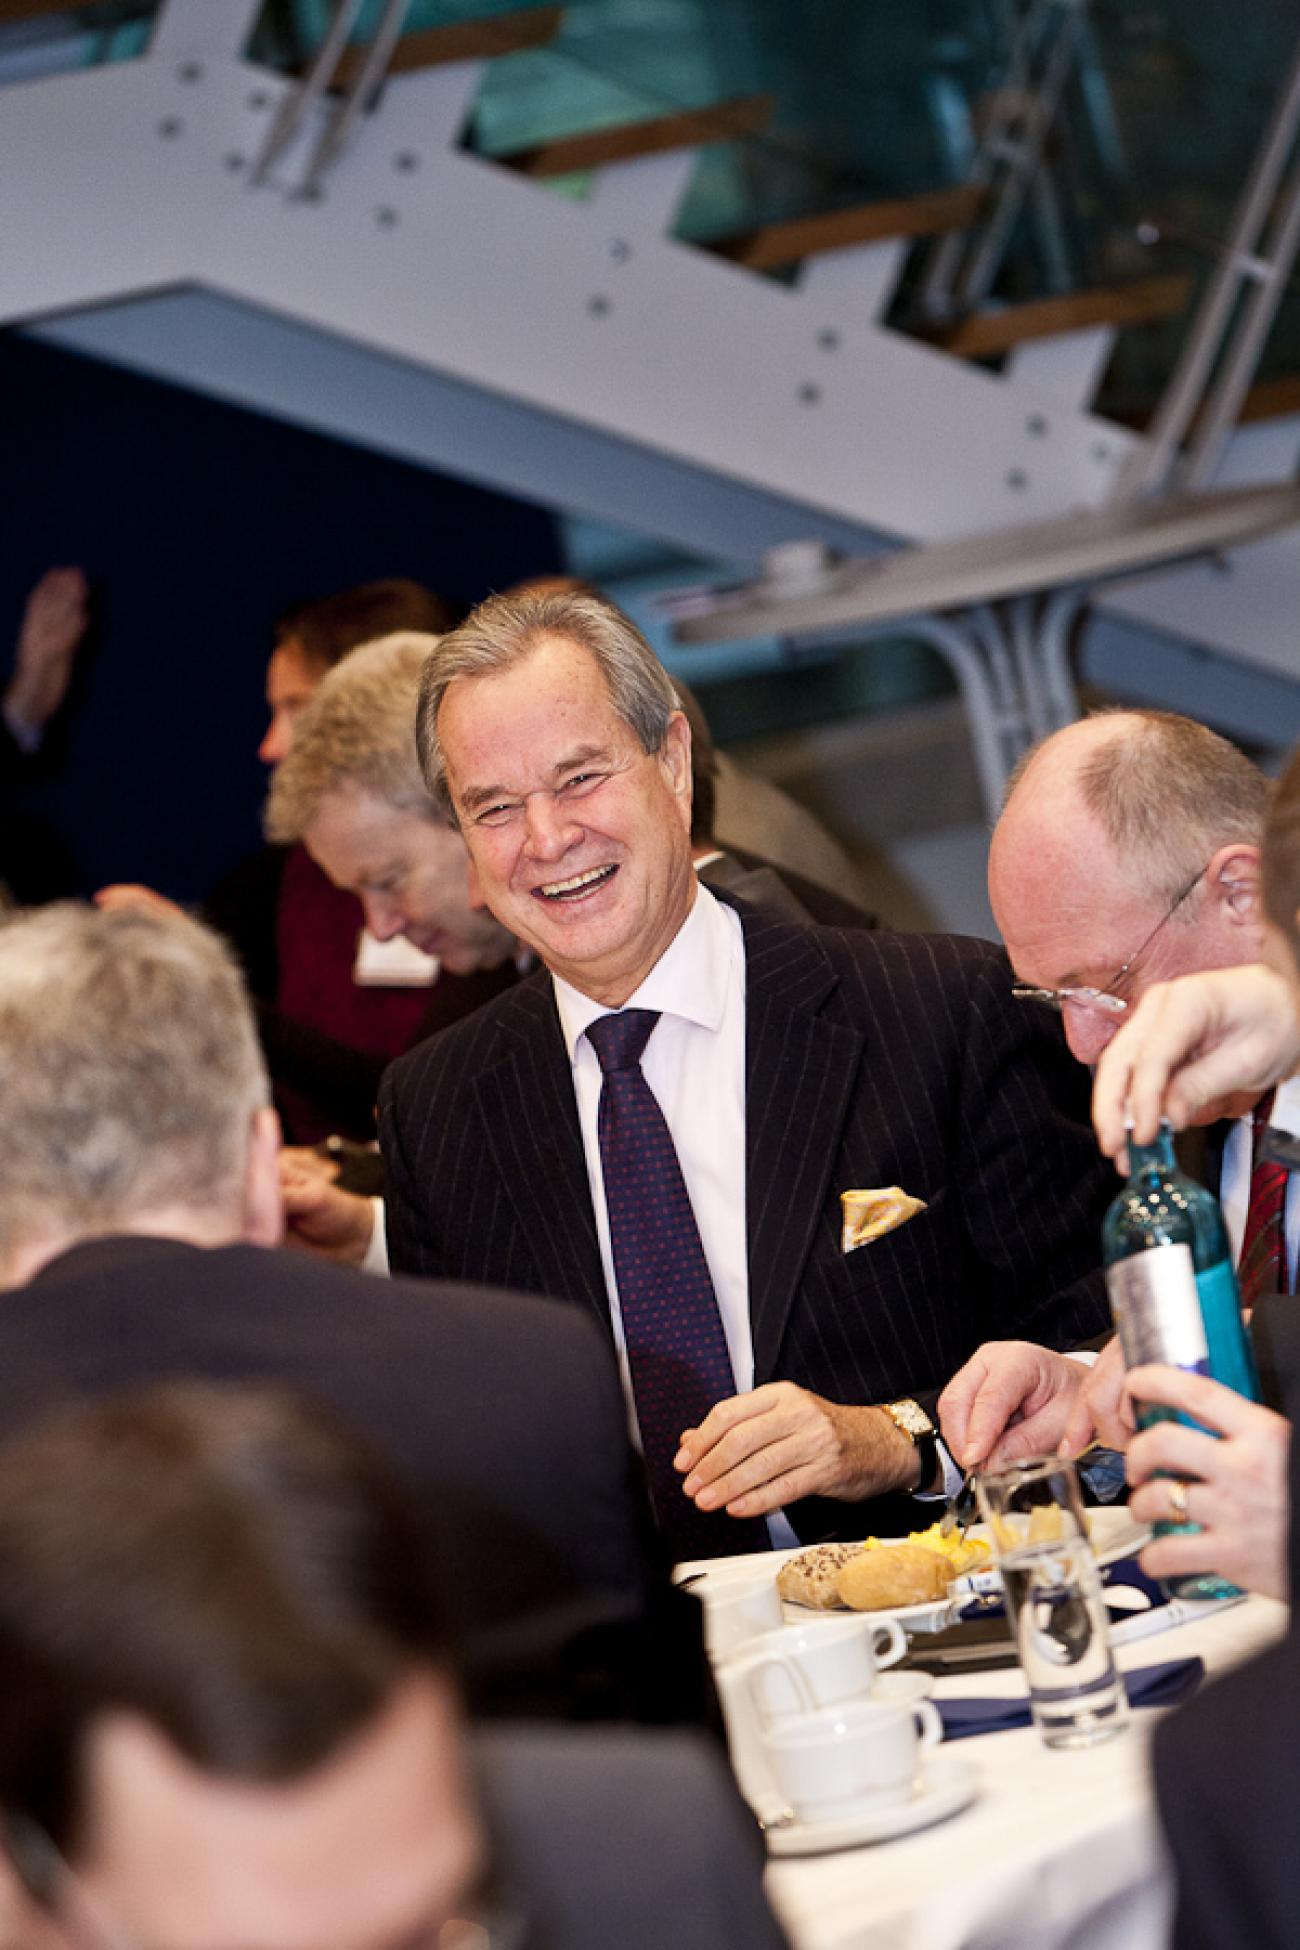 063 Business Breakfast VBKI 27022013 Inga Haar?itok=655ud4JB